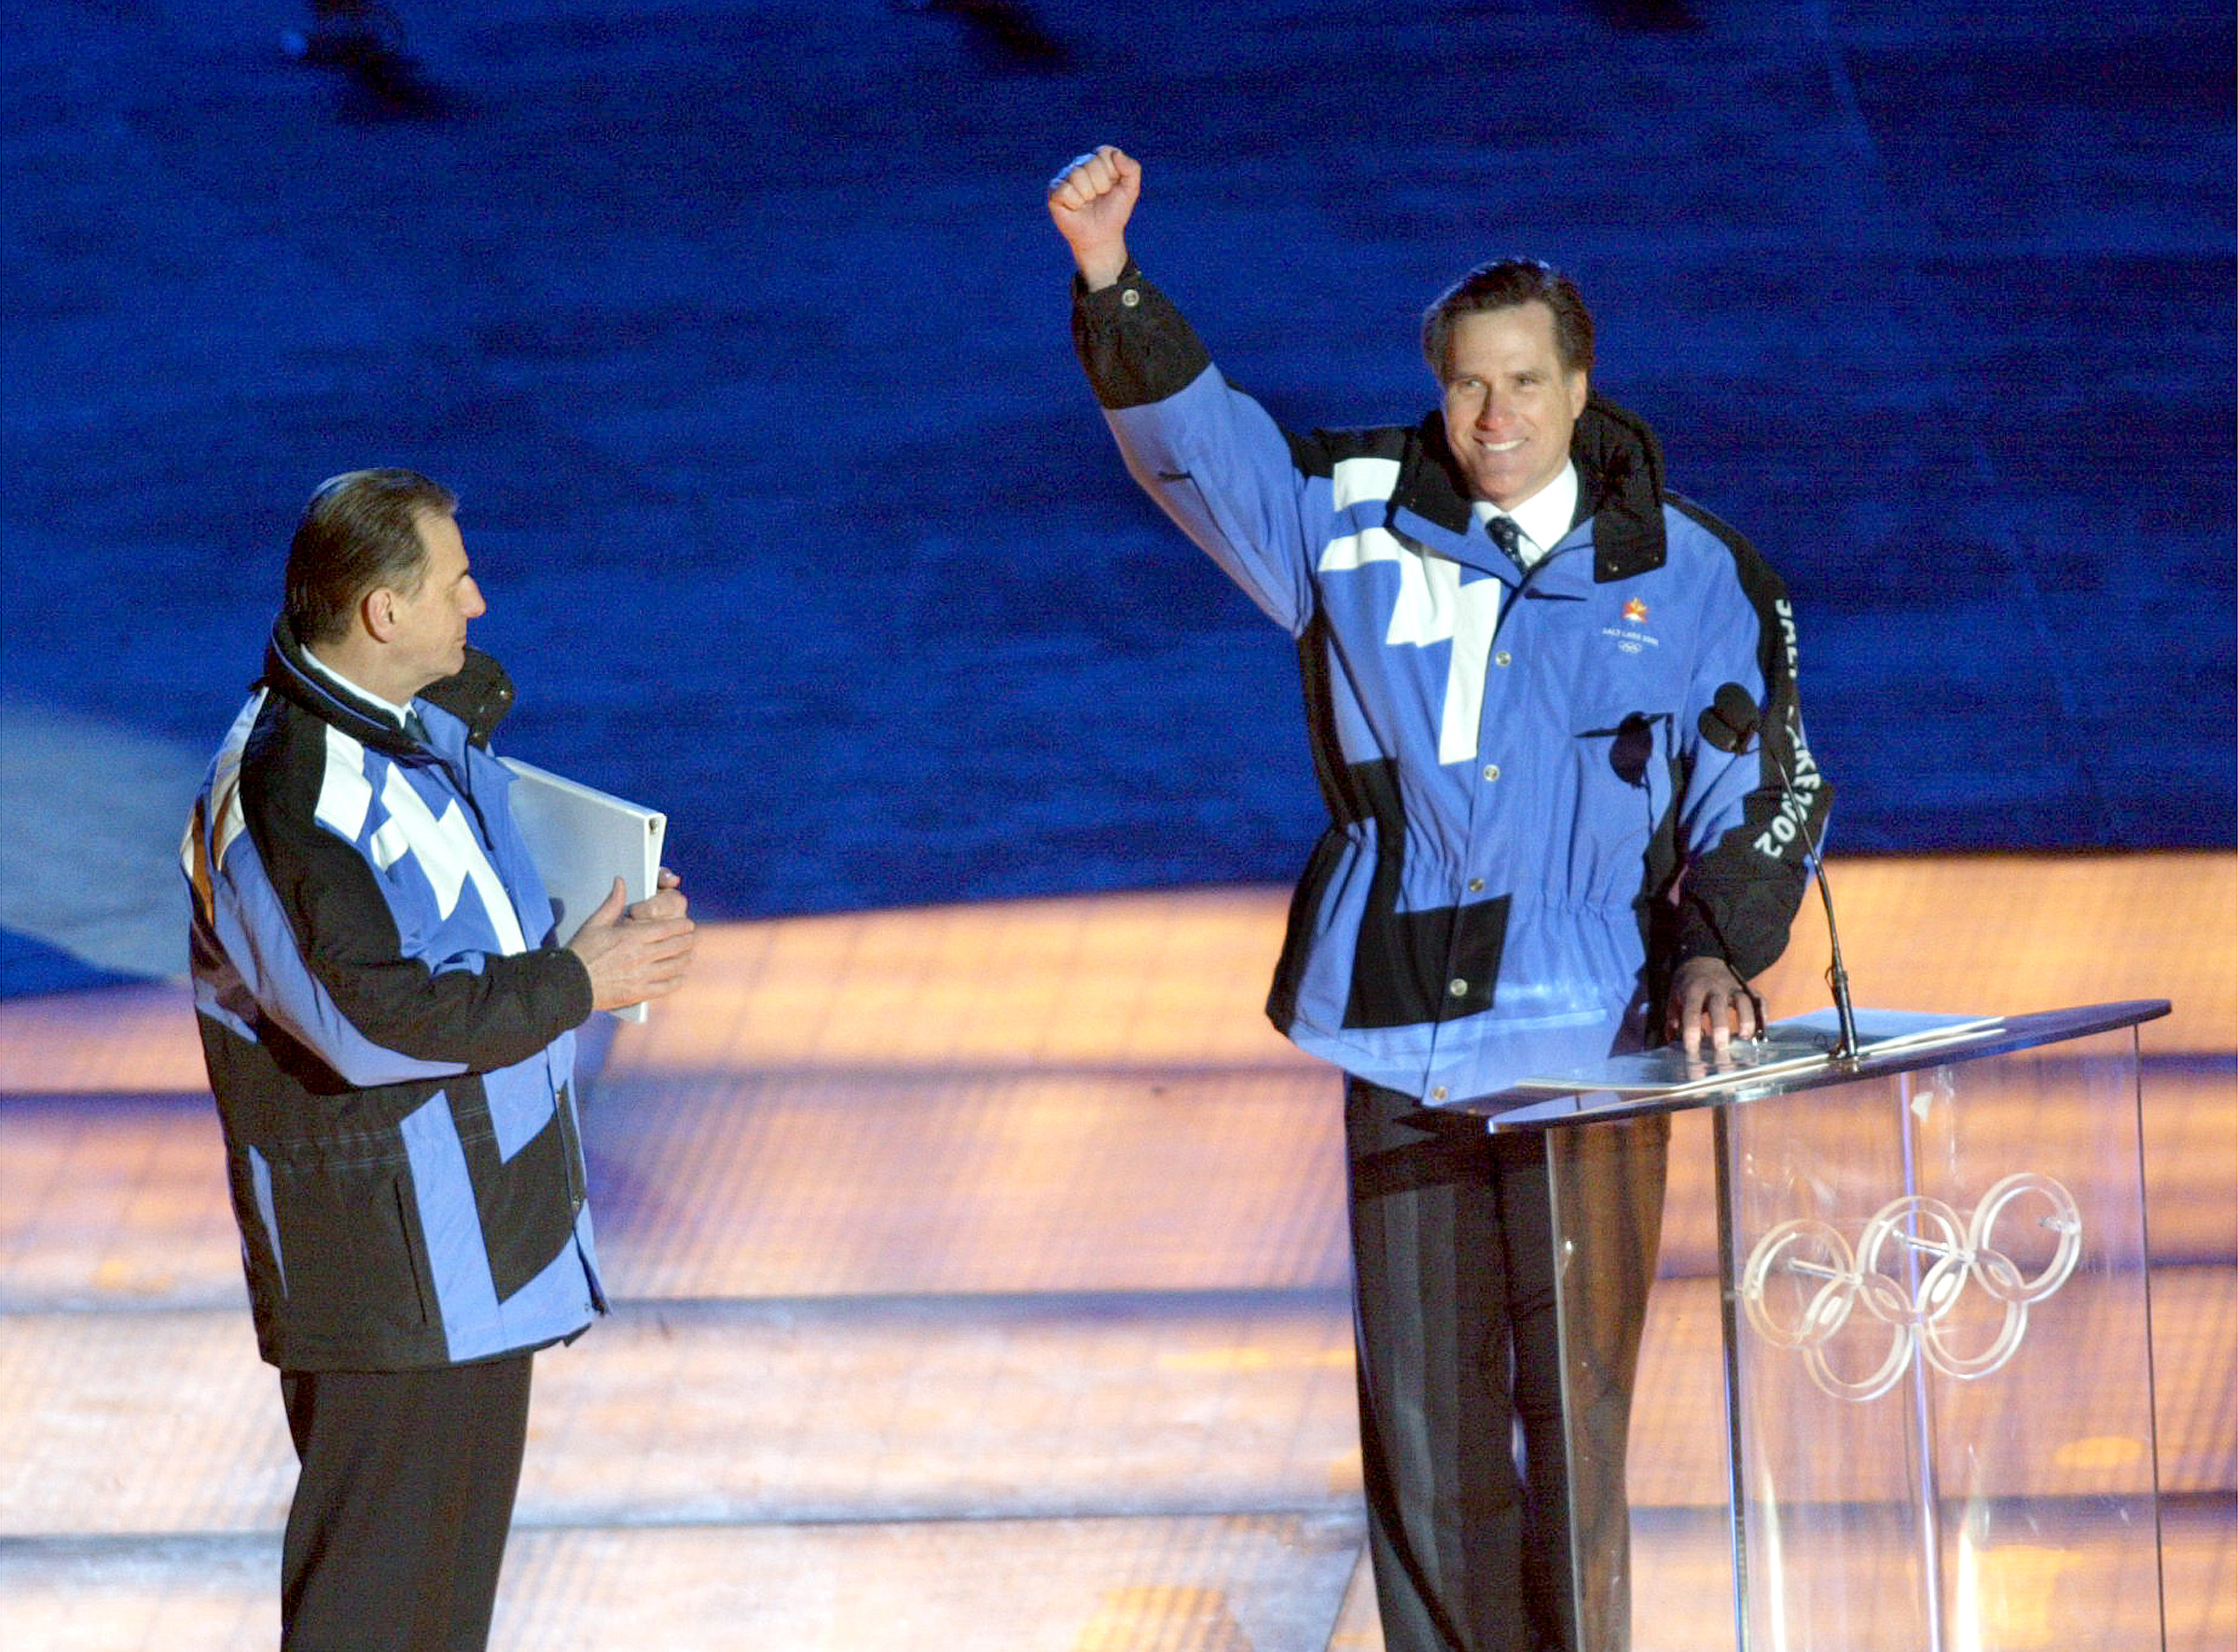 Mitt Romney appears during the opening ceremonies of the Salt Lake 2002 Winter Olympics.